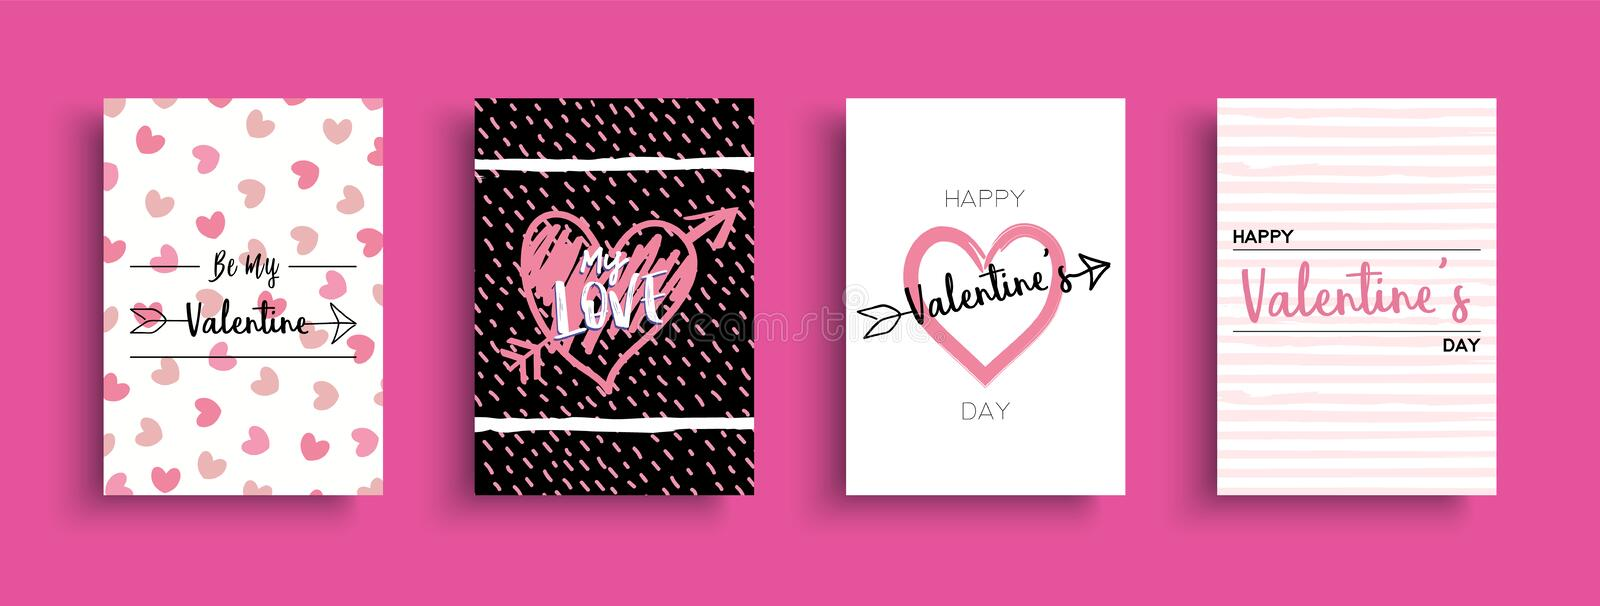 Valentines Day love quote greeting card set stock illustration